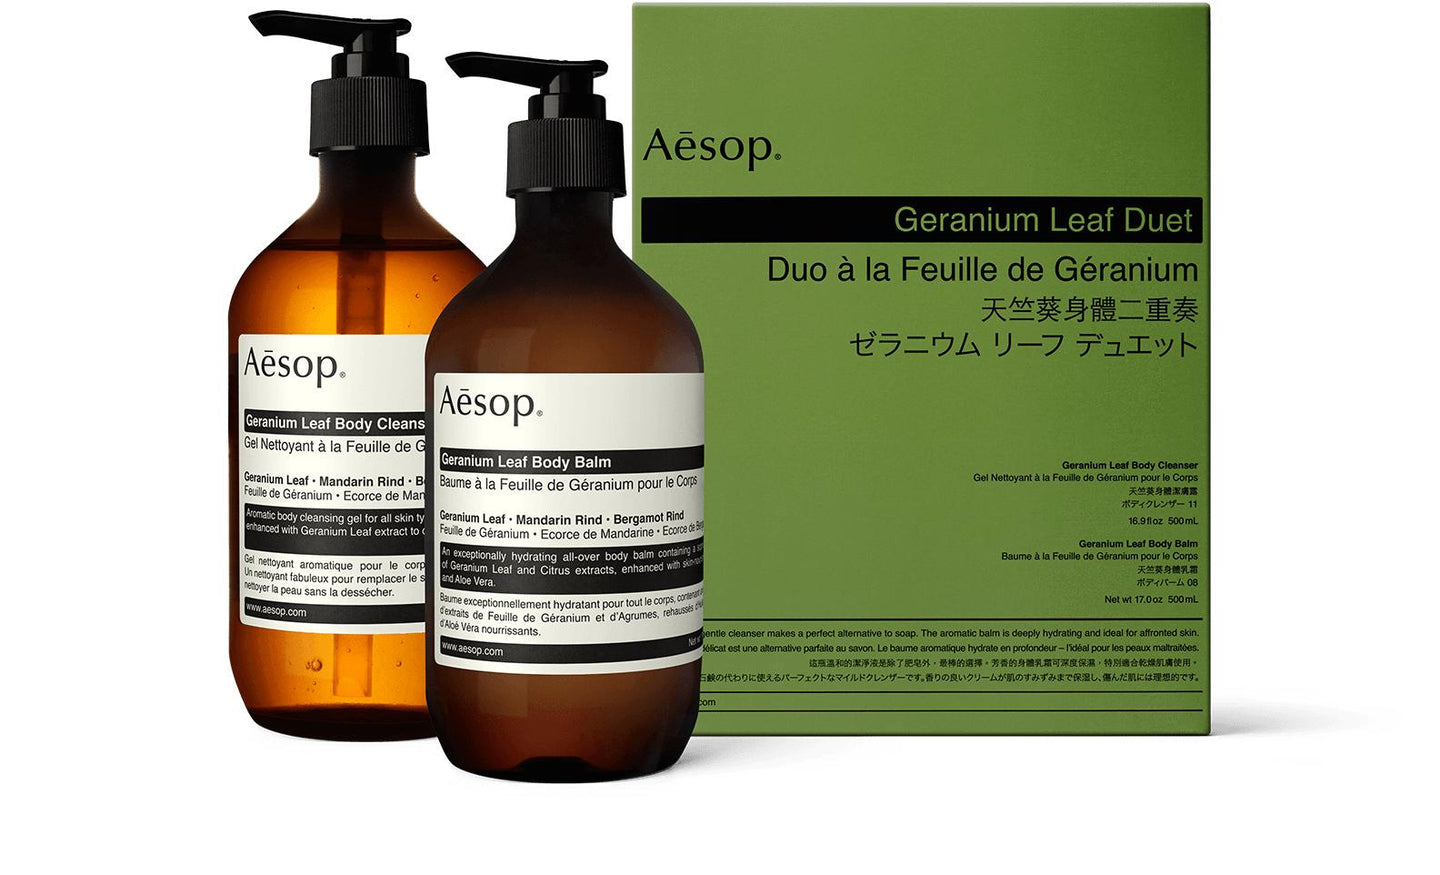 Aesop Geranium Leaf Duet / Neighborhood Goods